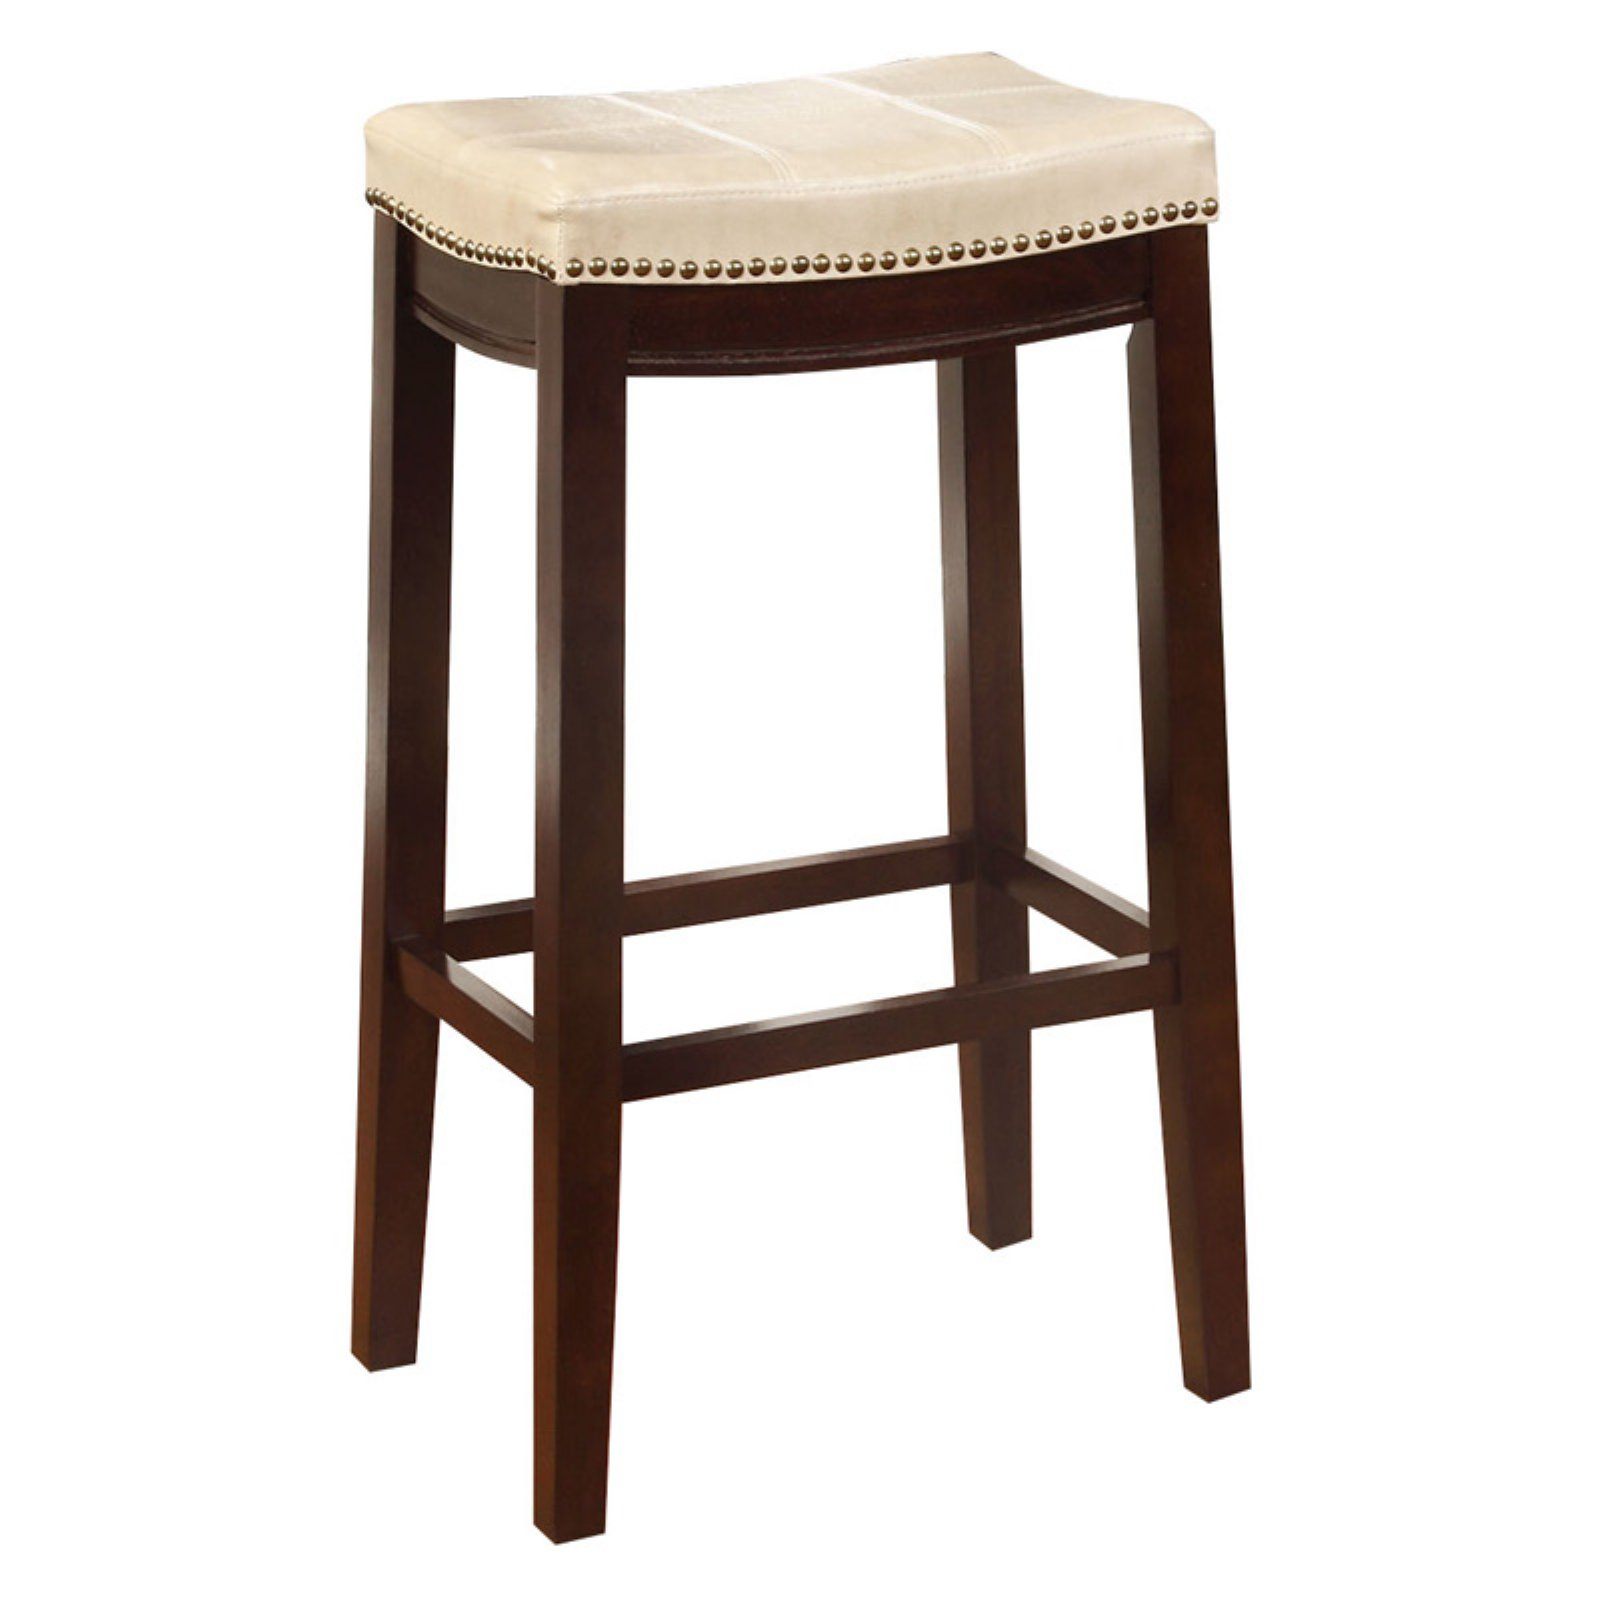 Beige Bar Stool High Chair Seat Claridge Patches 32 Inches Height Cafe Home New